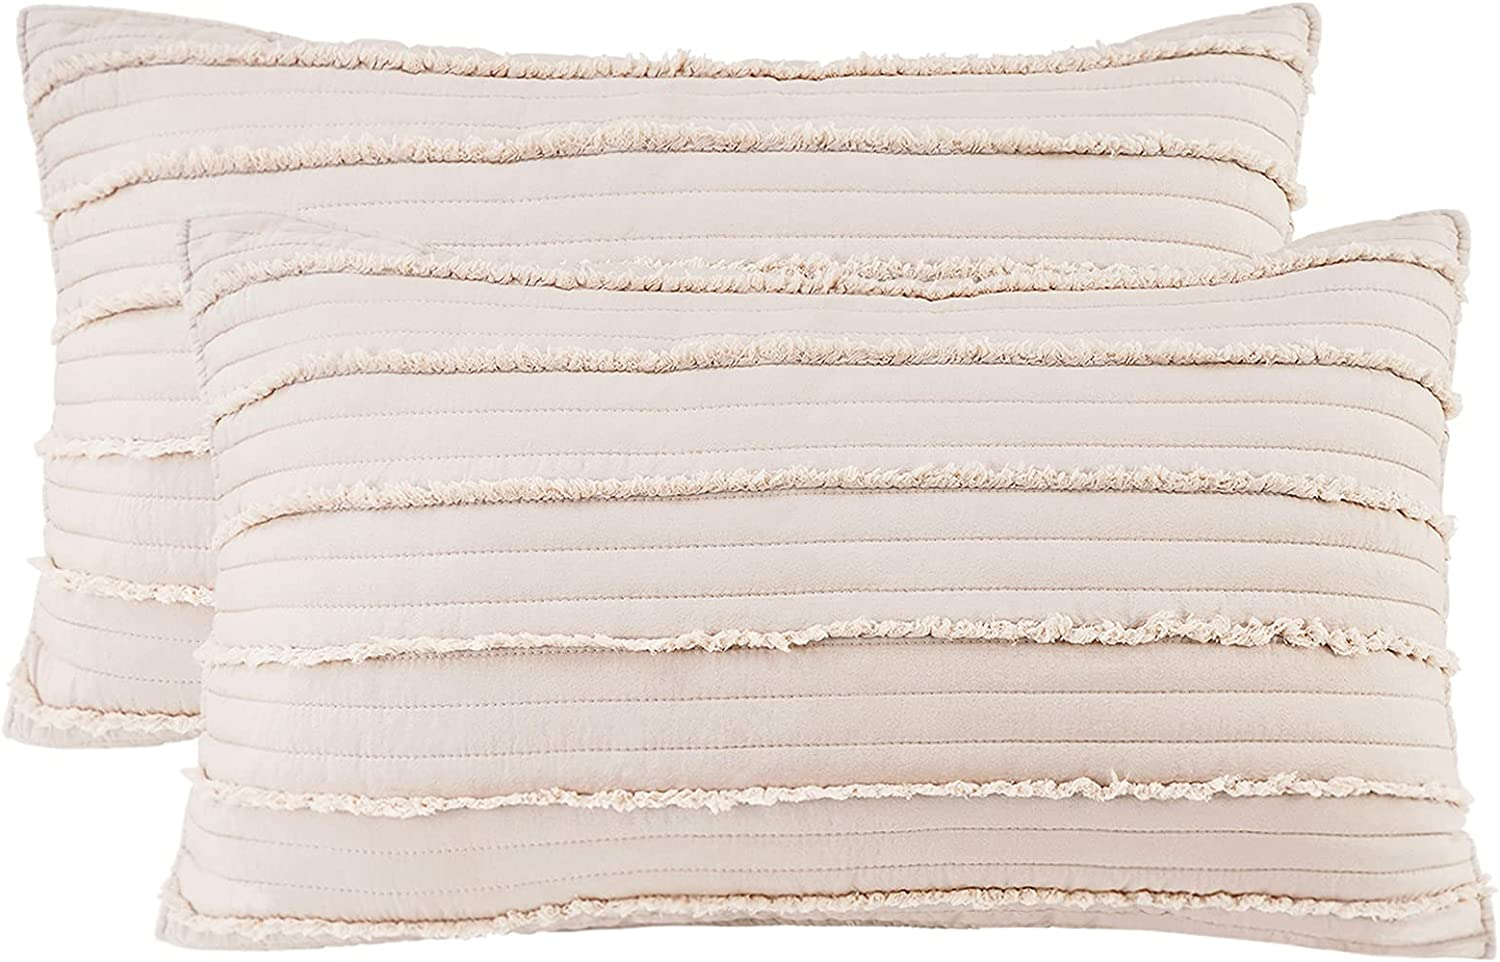 BOSOWOS Queen Size Pillow Protectors Set of 2,Soft Breathable 20 x 30 Inches Pillow Covers Encasement,Microfiber Pillowcases for Easy Care,Cappuccino